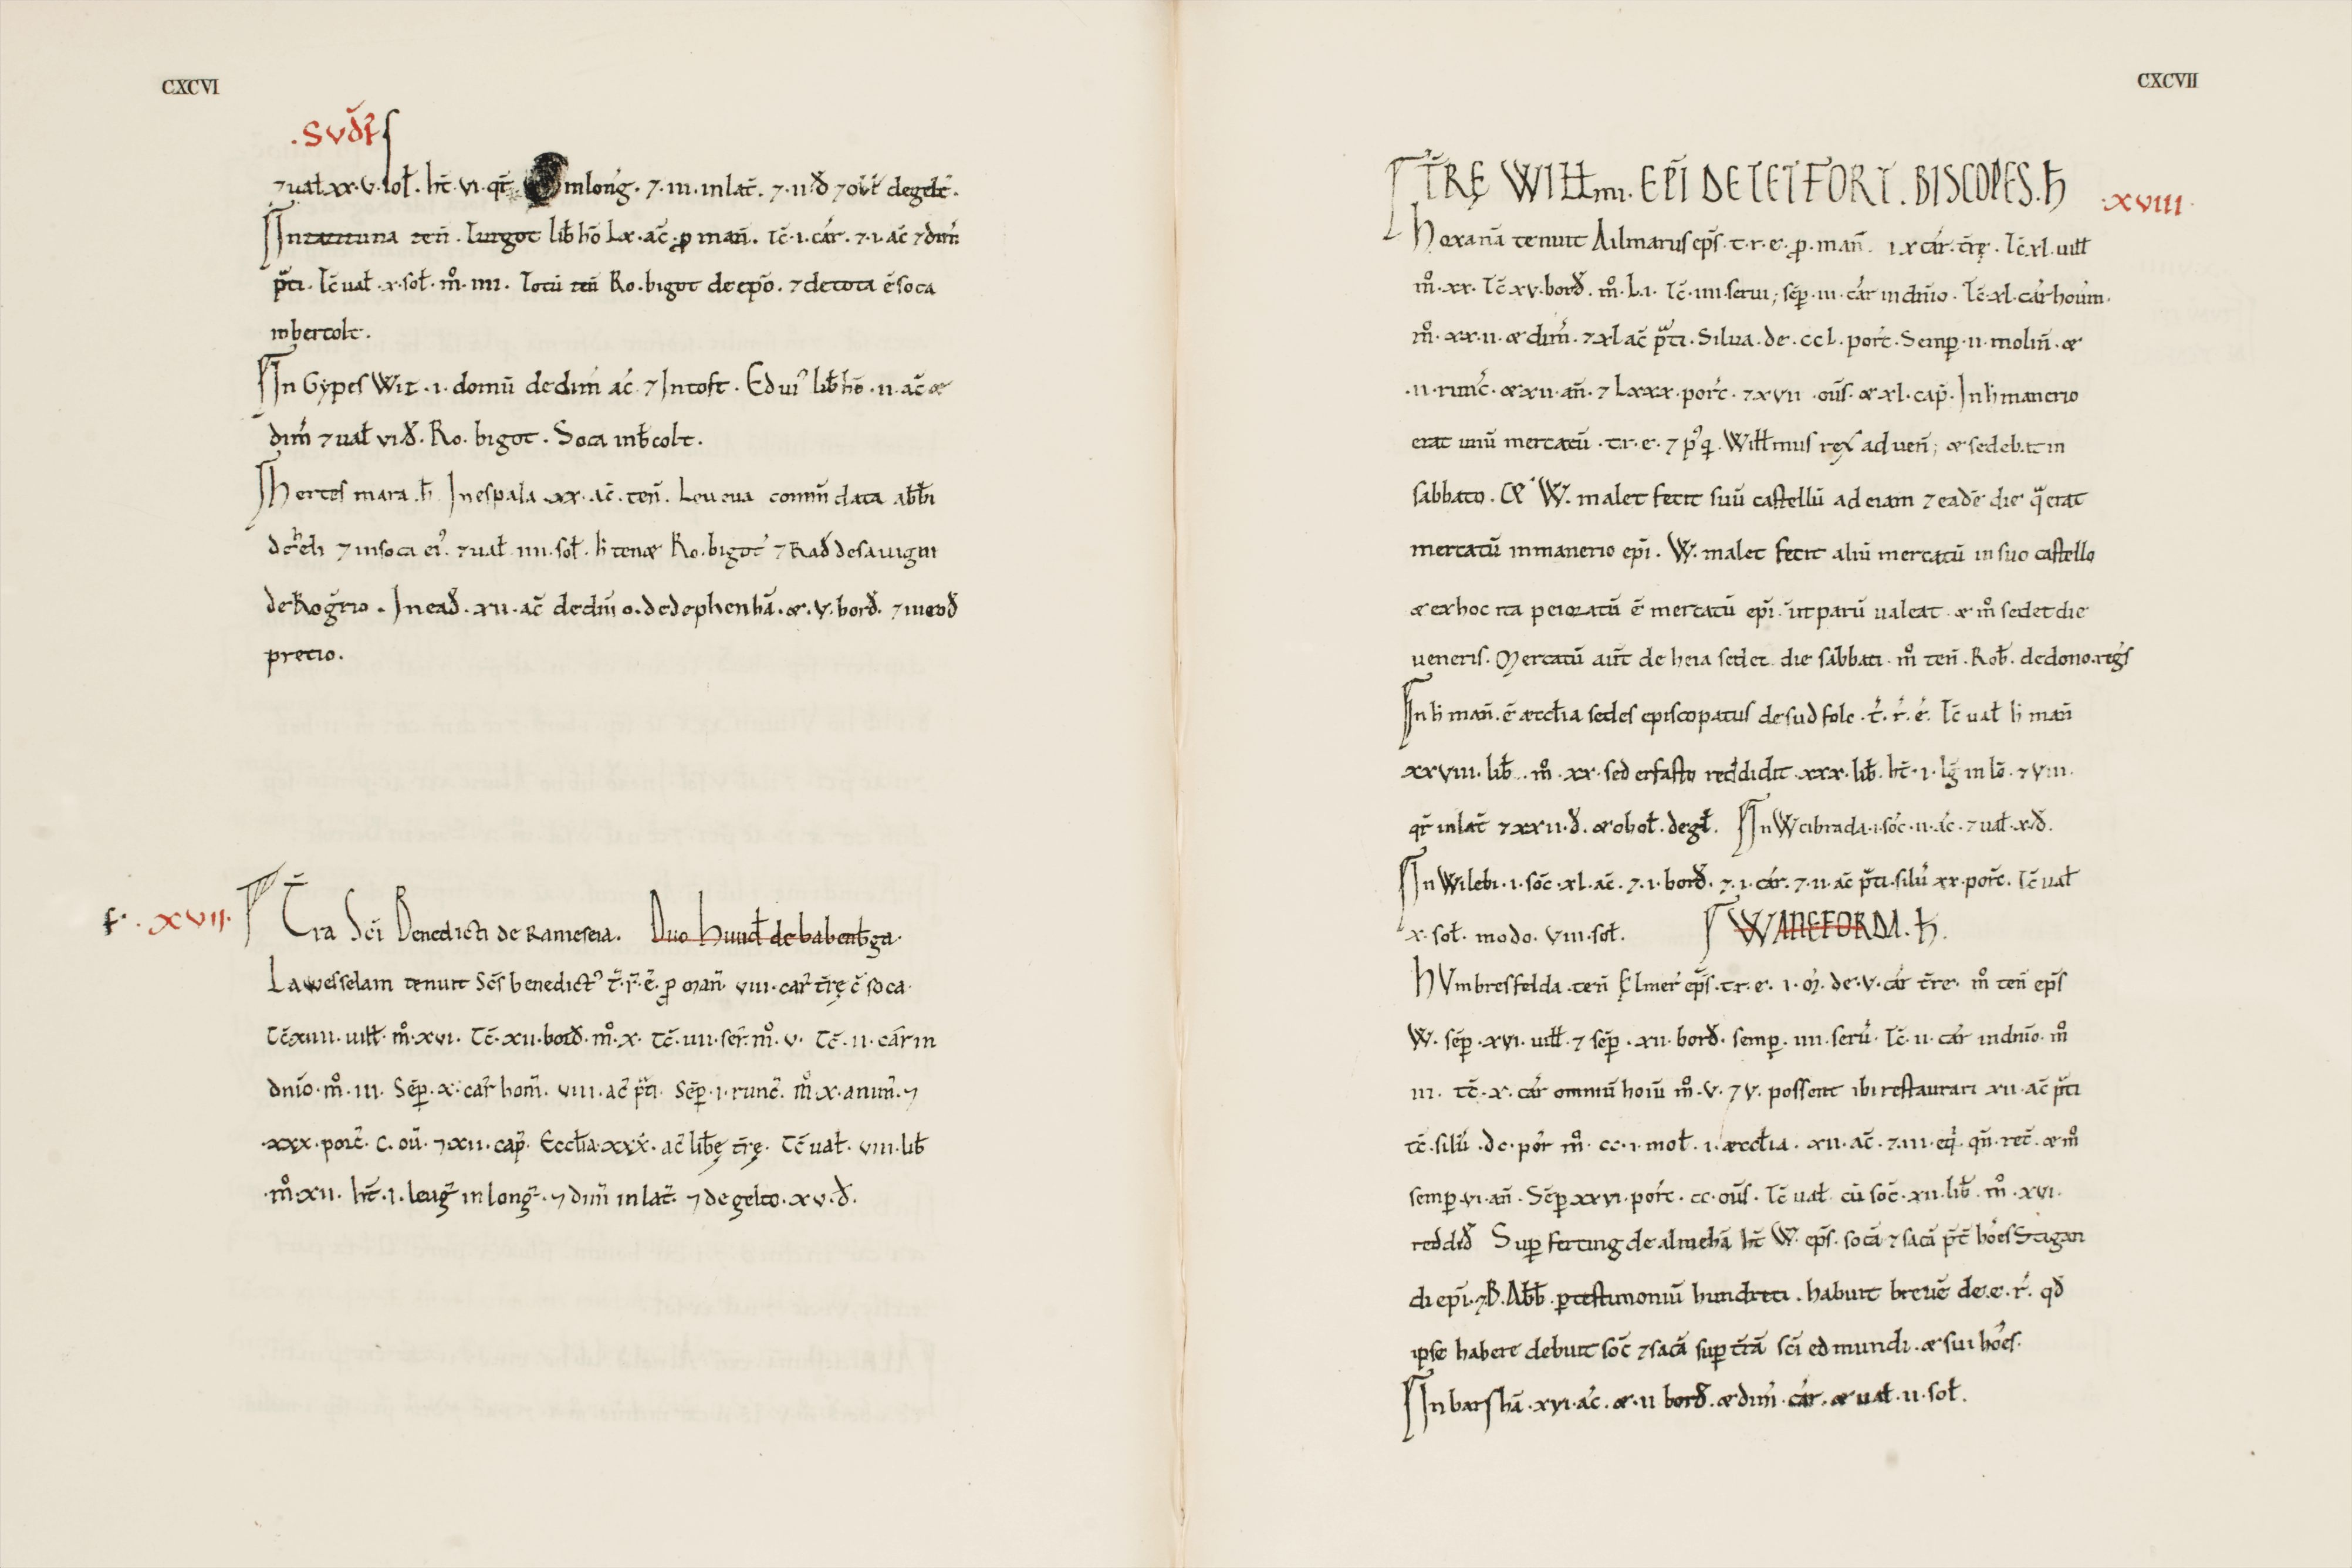 Lit Une Place Dimension Le Luxe original Folio Of Suffolk Page 99 In Domesday Book